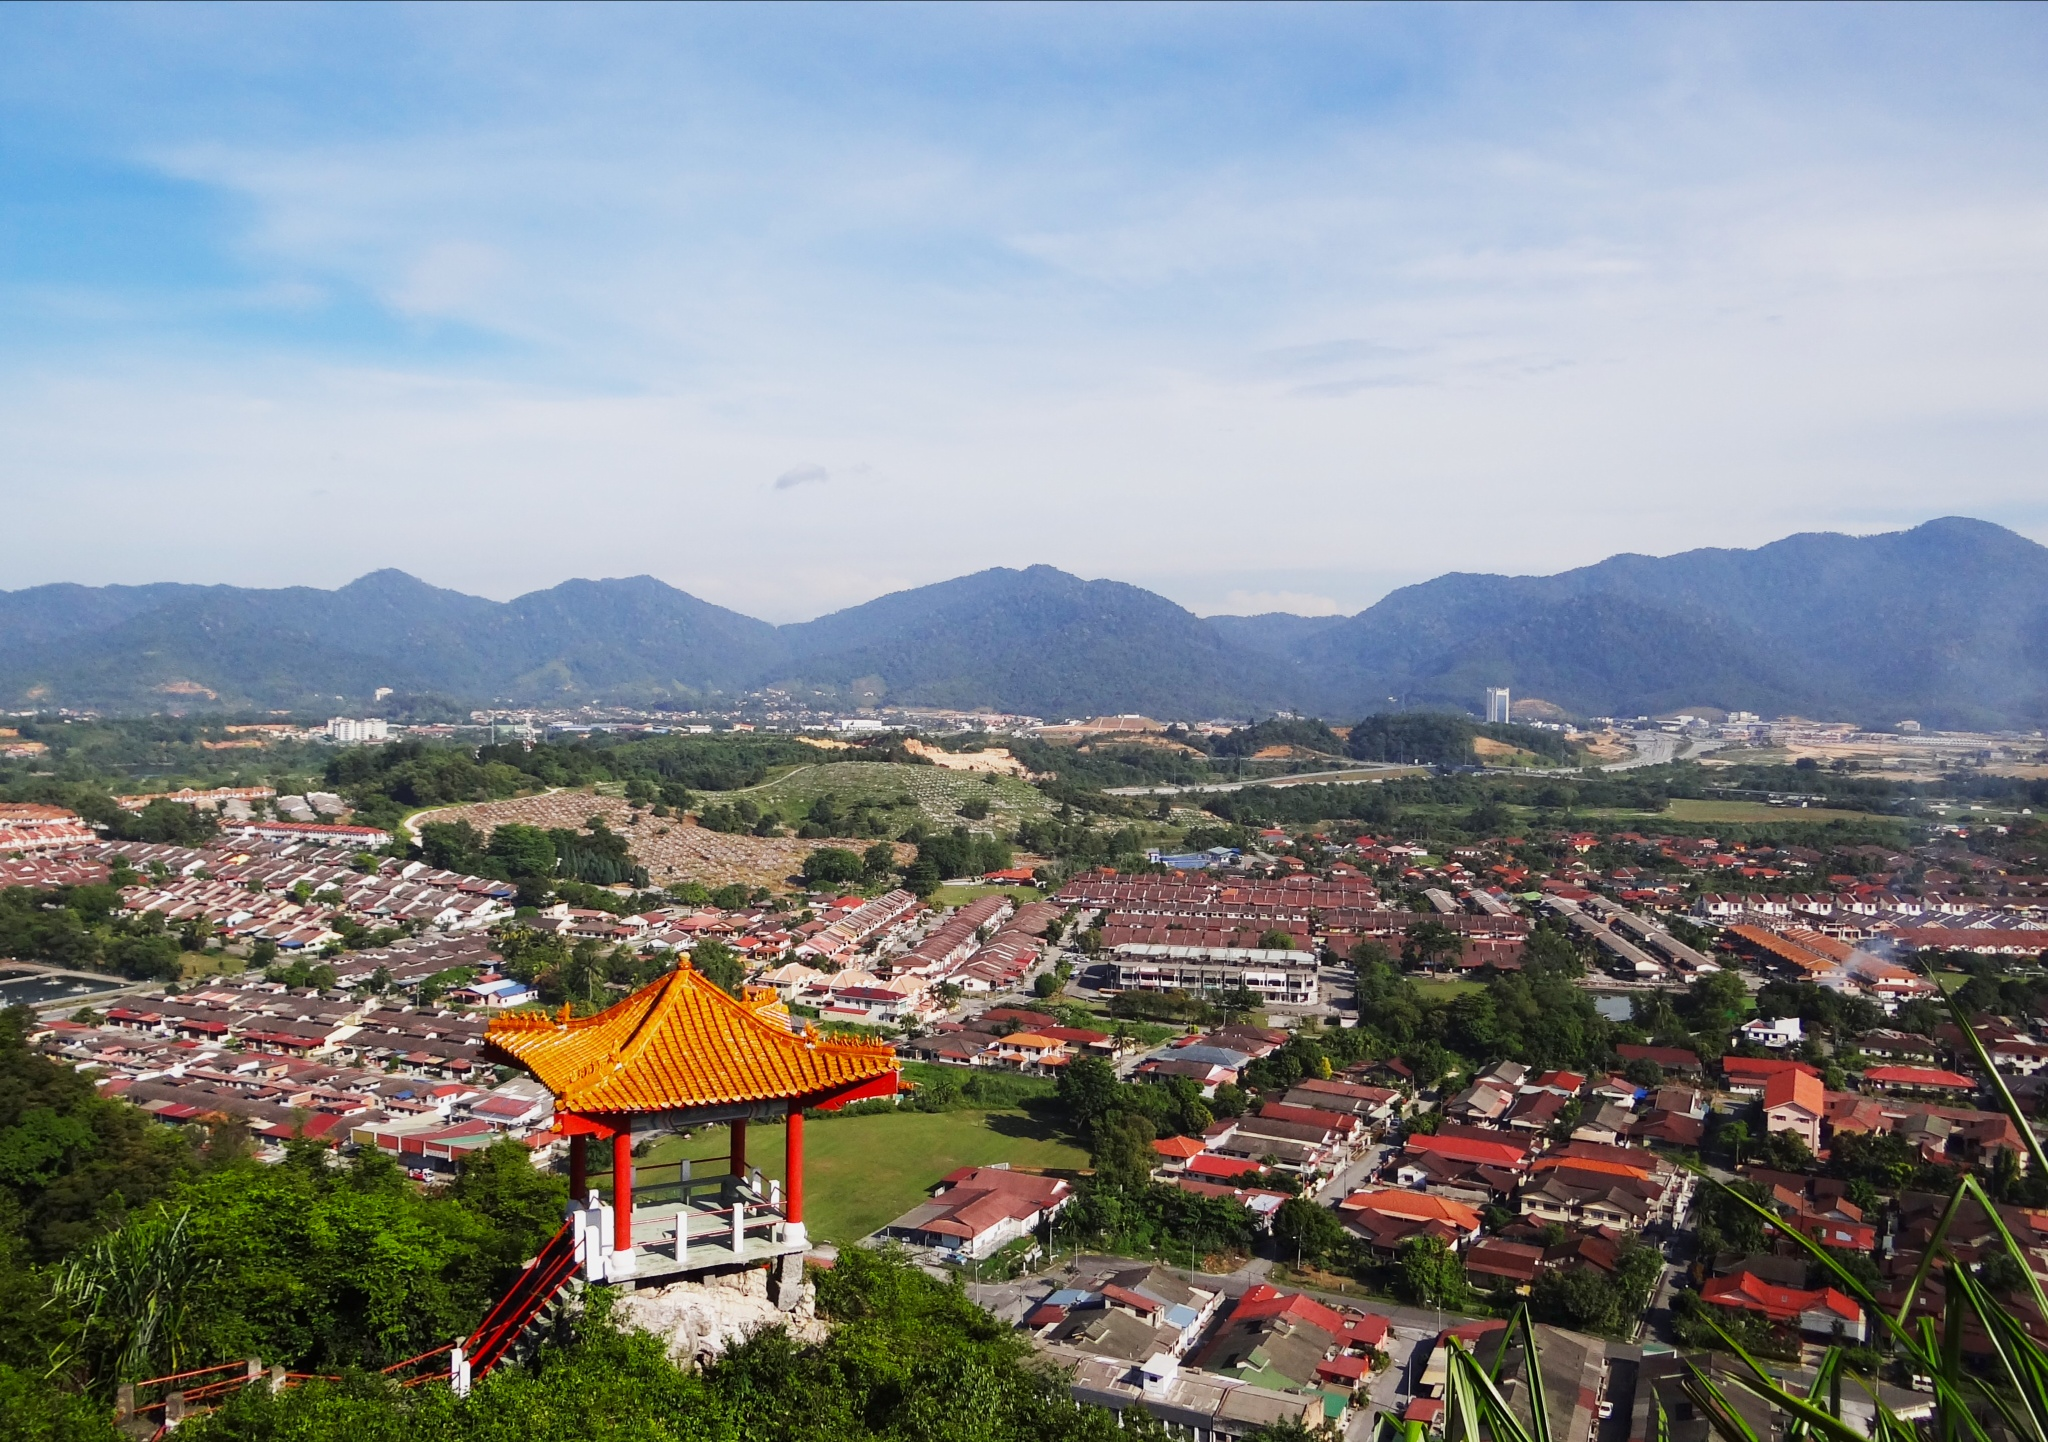 View from the top of the hill at the Perak Cave Temple Ipoh, Malaysia